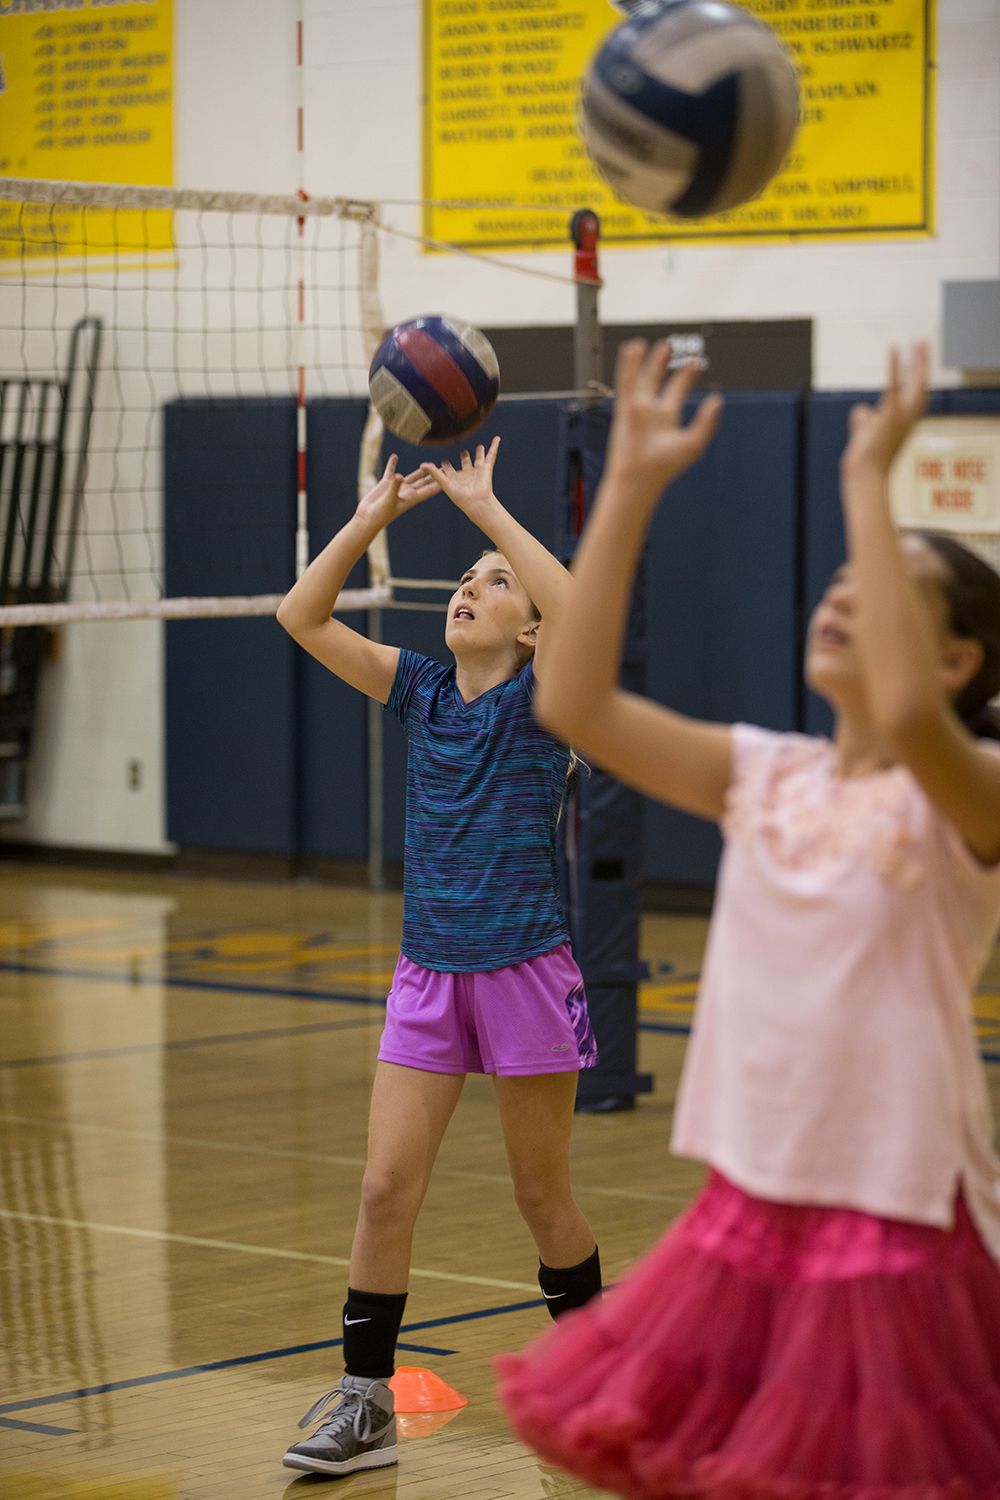 Championship Volleyball Camp